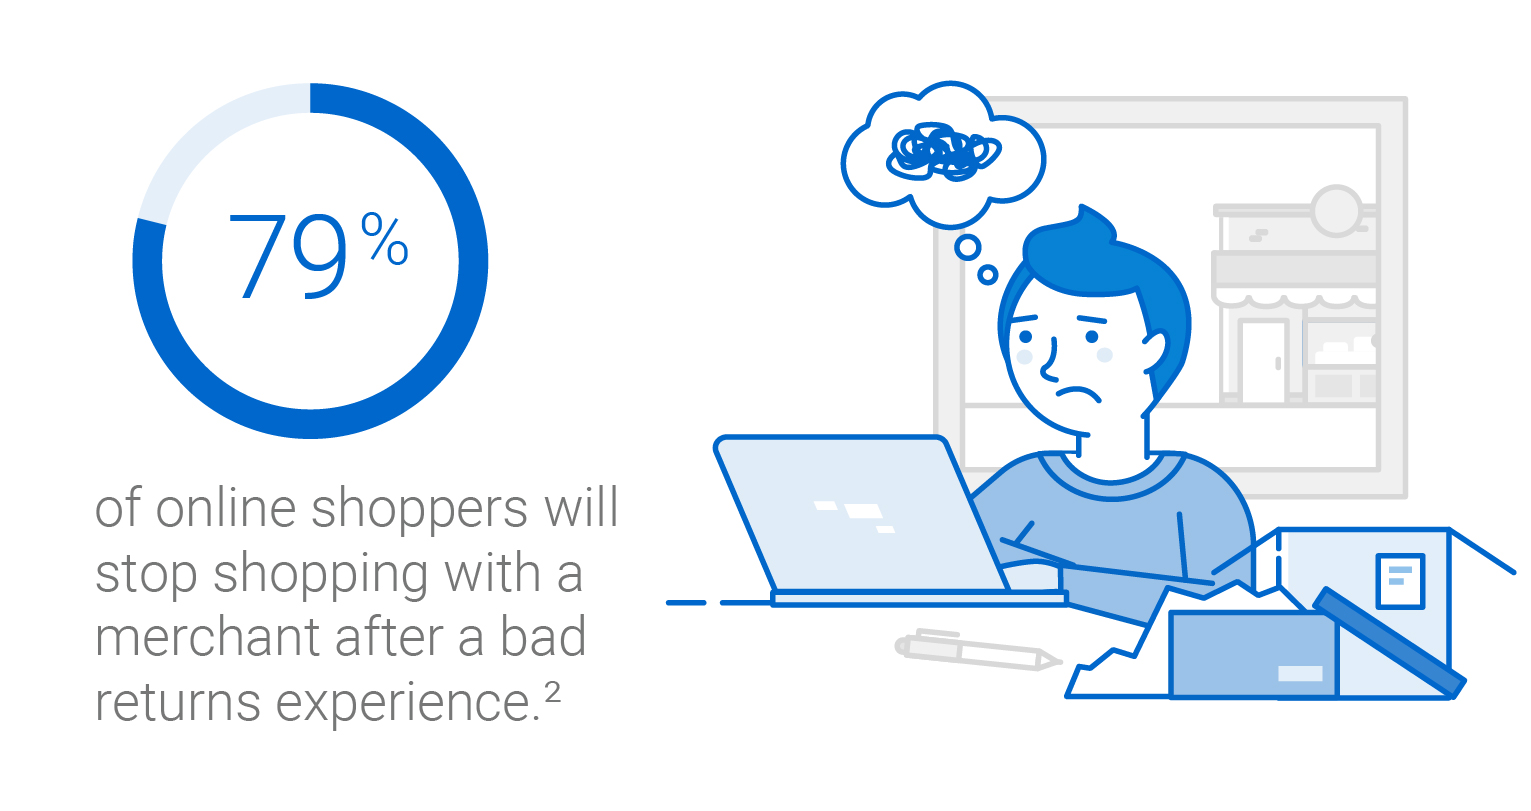 79 per cent of online shoppers will stop shopping with a merchant after a bad returns experience.